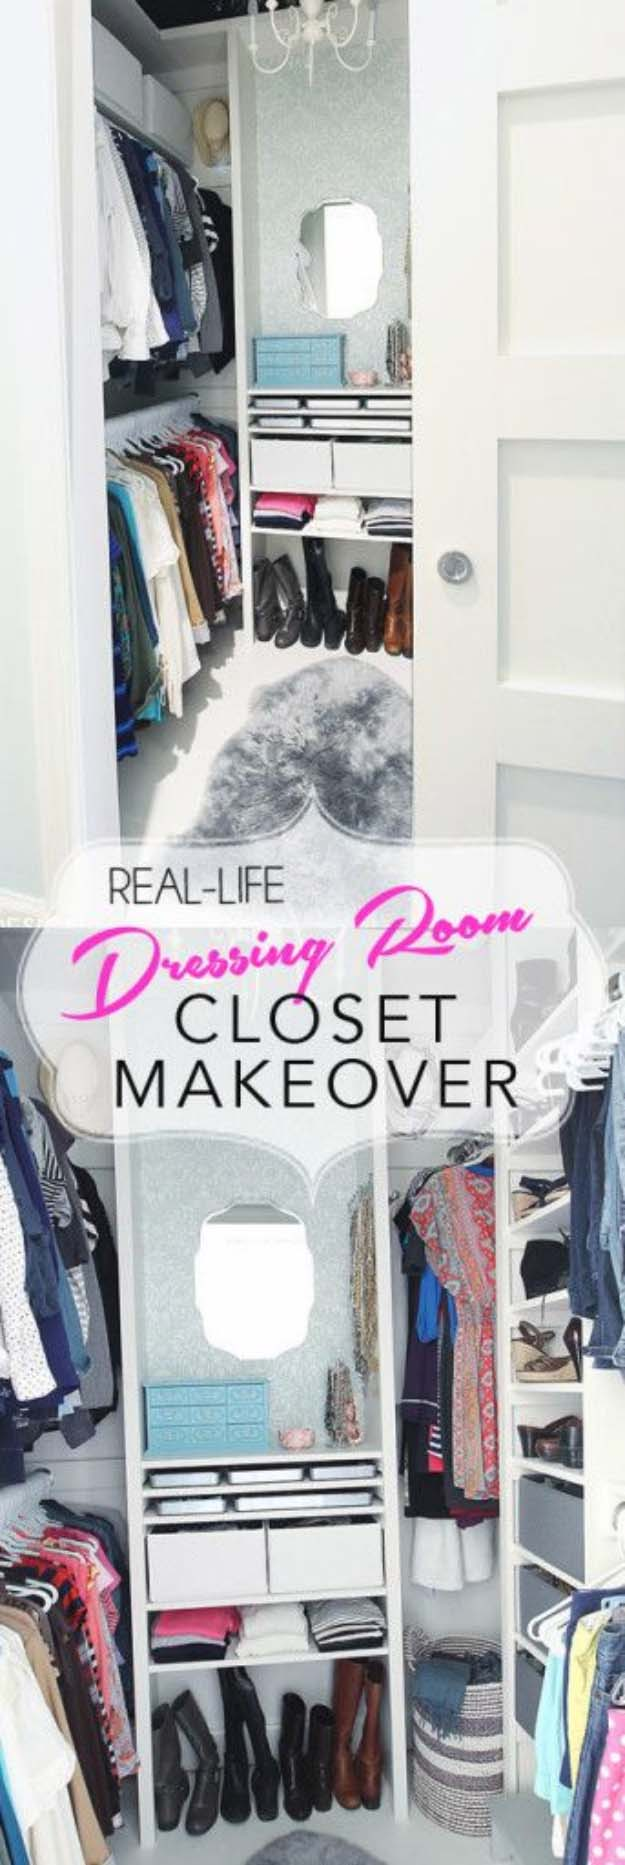 DIY Closet Organization Ideas for Messy Closets and Small Spaces. Organizing Hacks and Homemade Shelving And Storage Tips for Garage, Pantry, Bedroom., Clothes and Kitchen | From Cluttered Mess to Mini-Dressing Room, A DIY Closet Makeover #organizing #closets #organizingideas